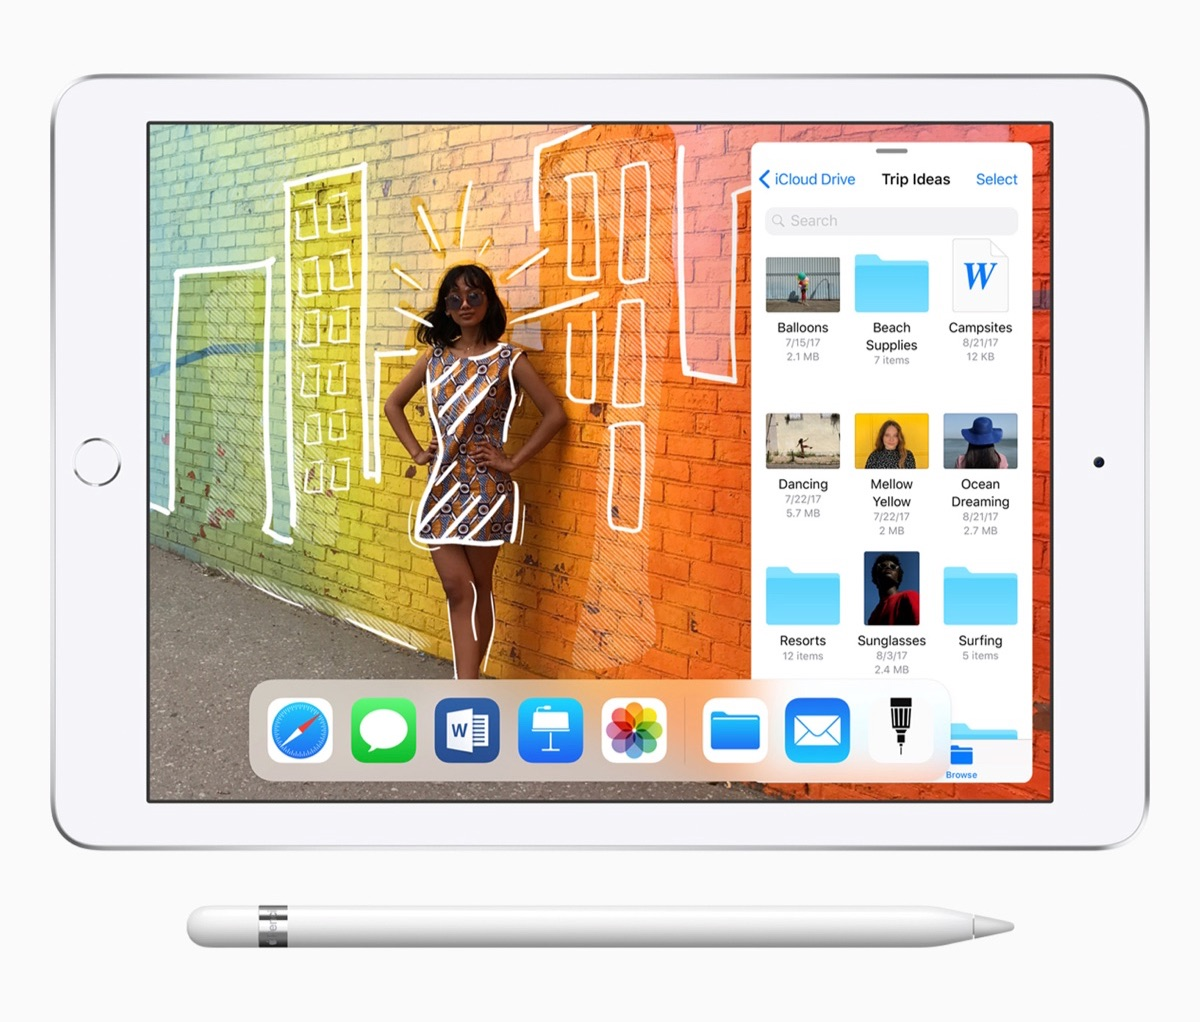 Apple Debuts New 9.7-inch iPad - Includes Apple Pencil Support